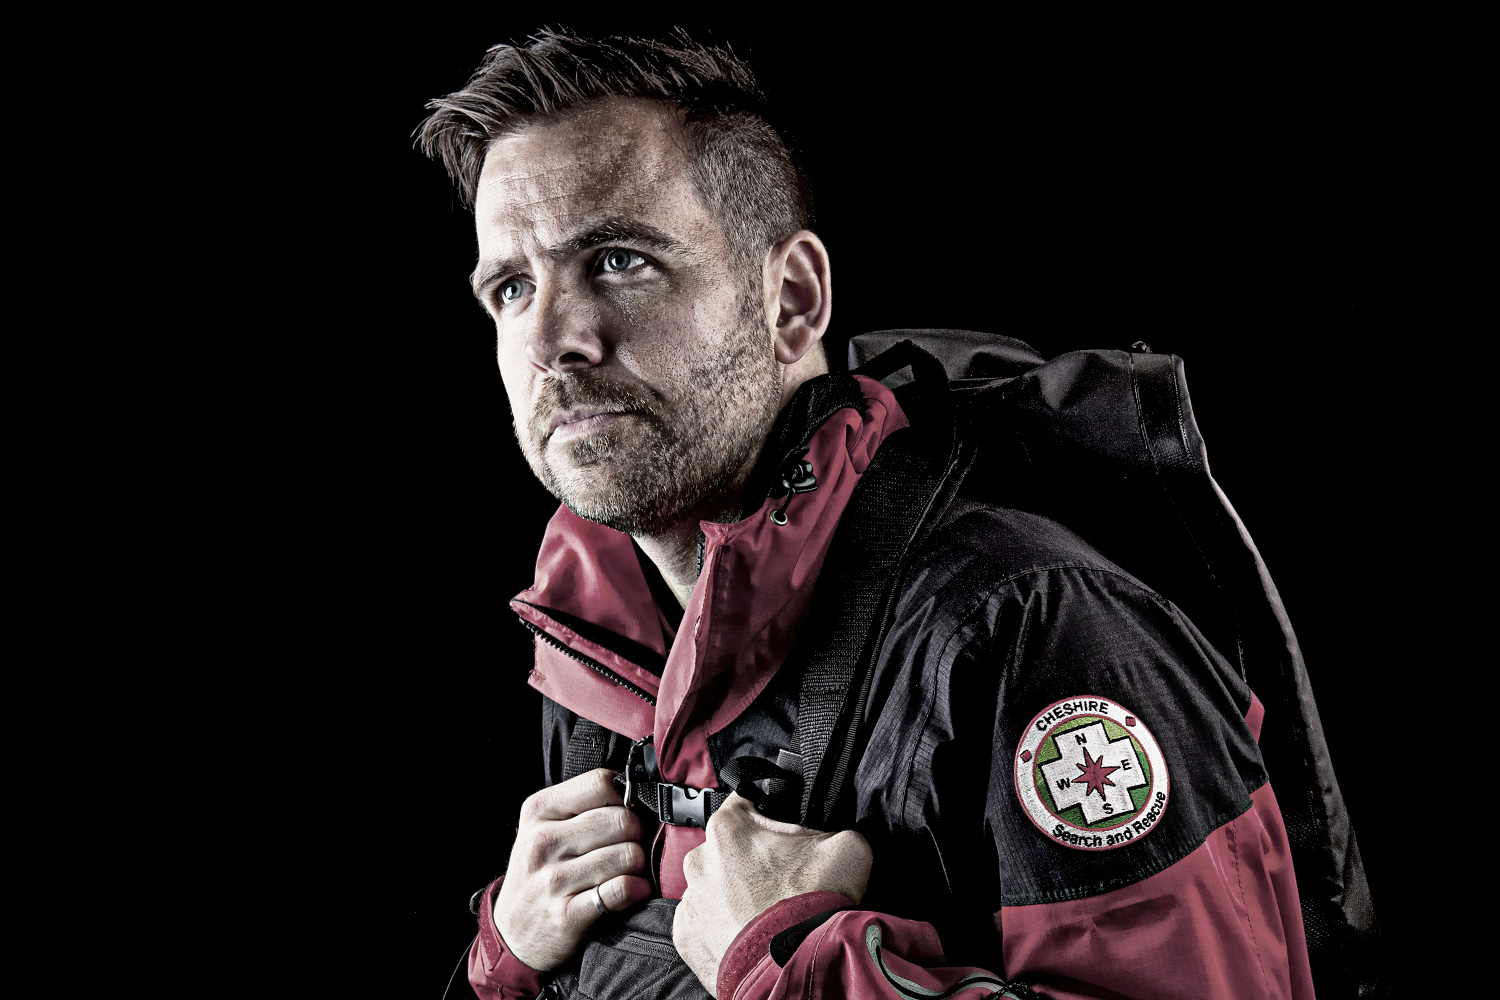 Staff Portrait Photograph of man in Weather Proof Jacket and Back Pack from Cheshire Search and Rescue by Paul Worpole Photography